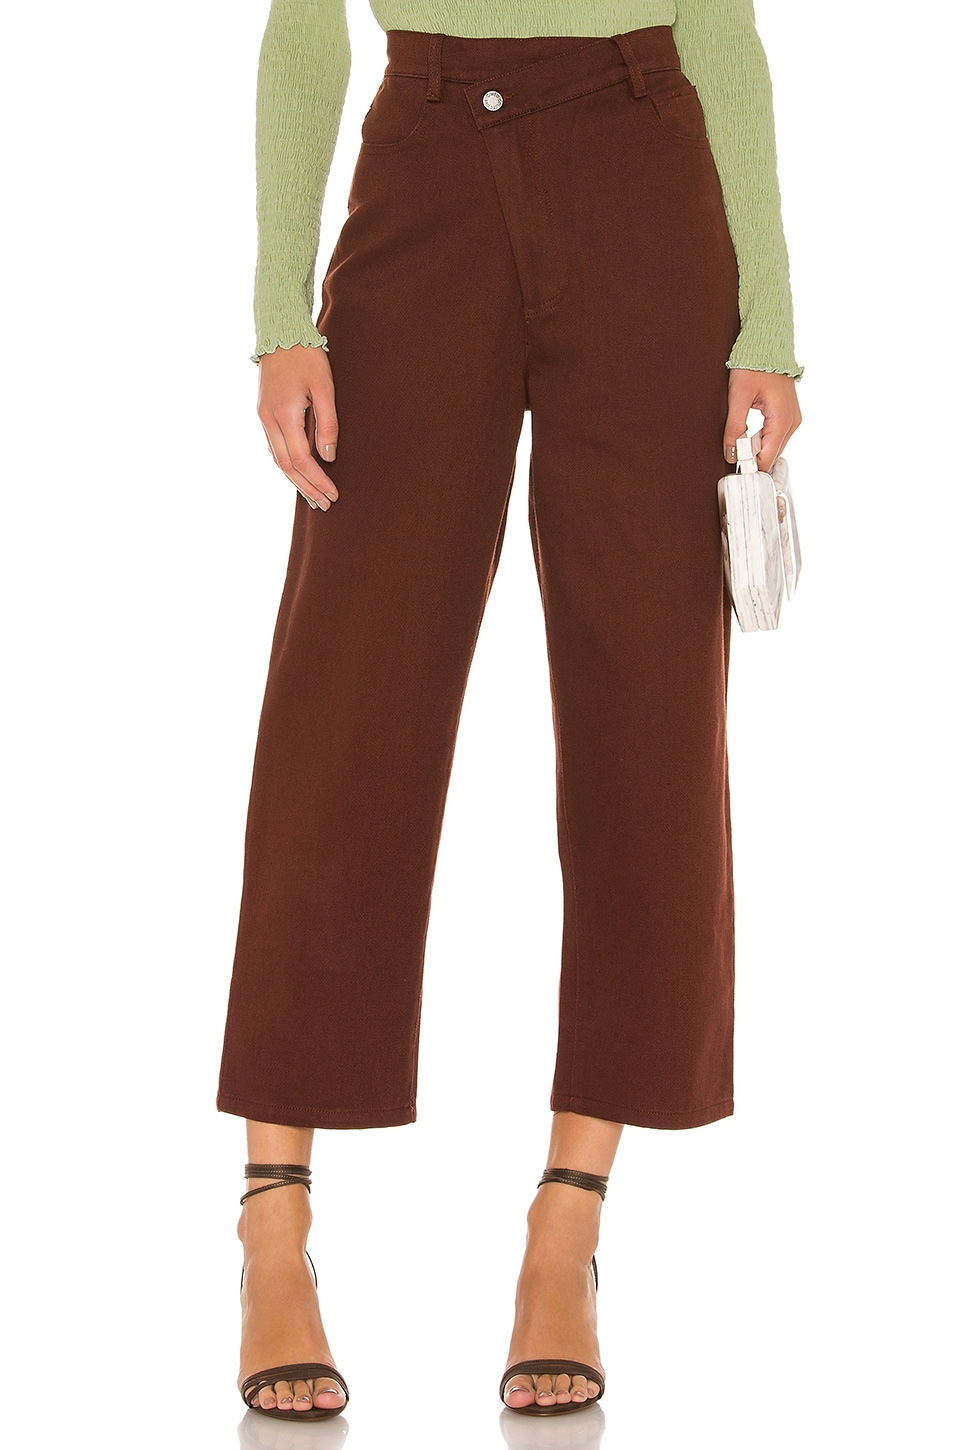 C/MEO Between The Lines Jean in Mahogany